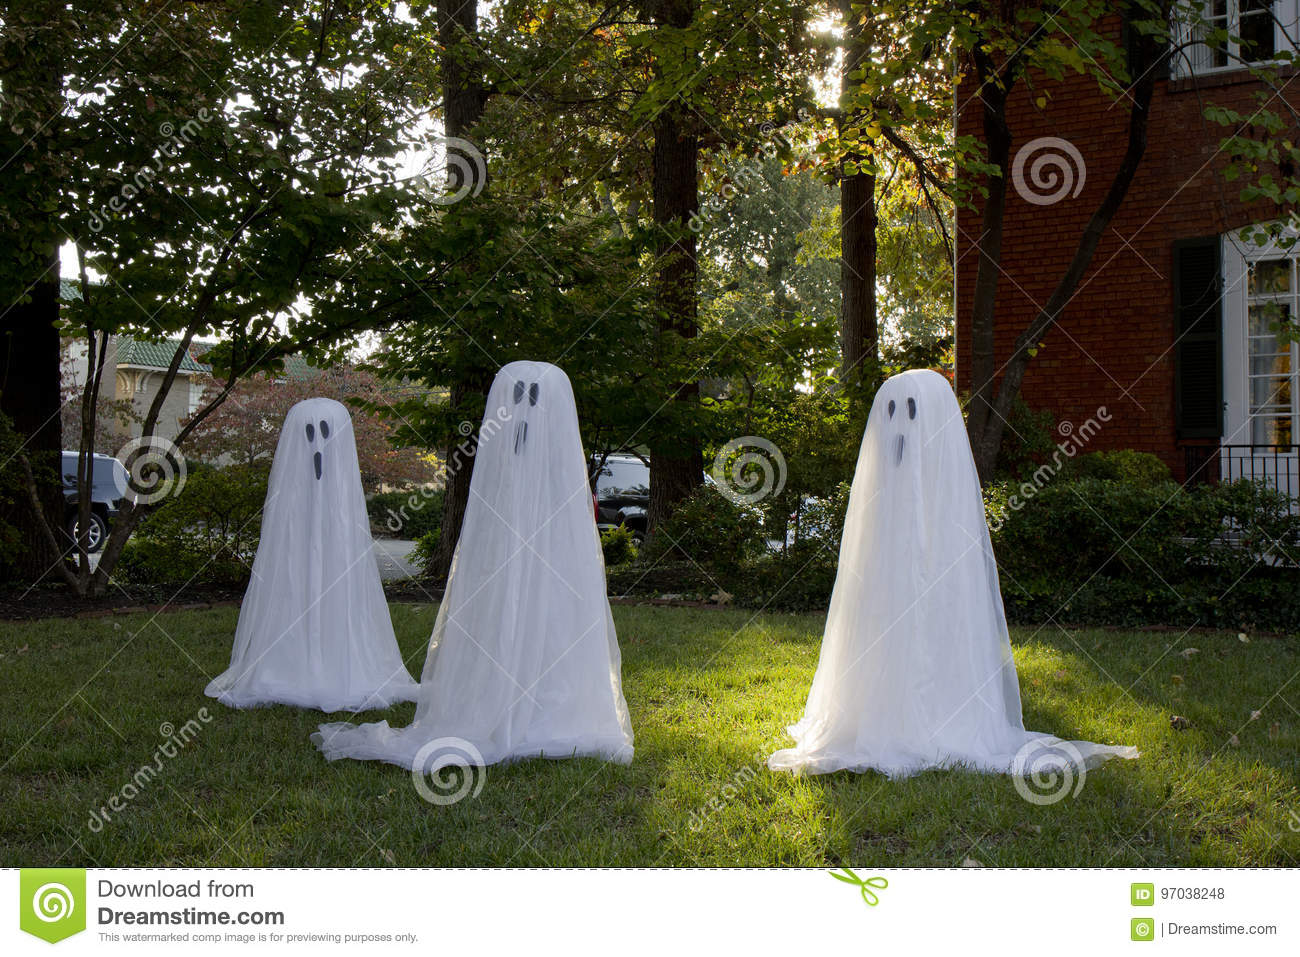 ghosts in yard for halloween